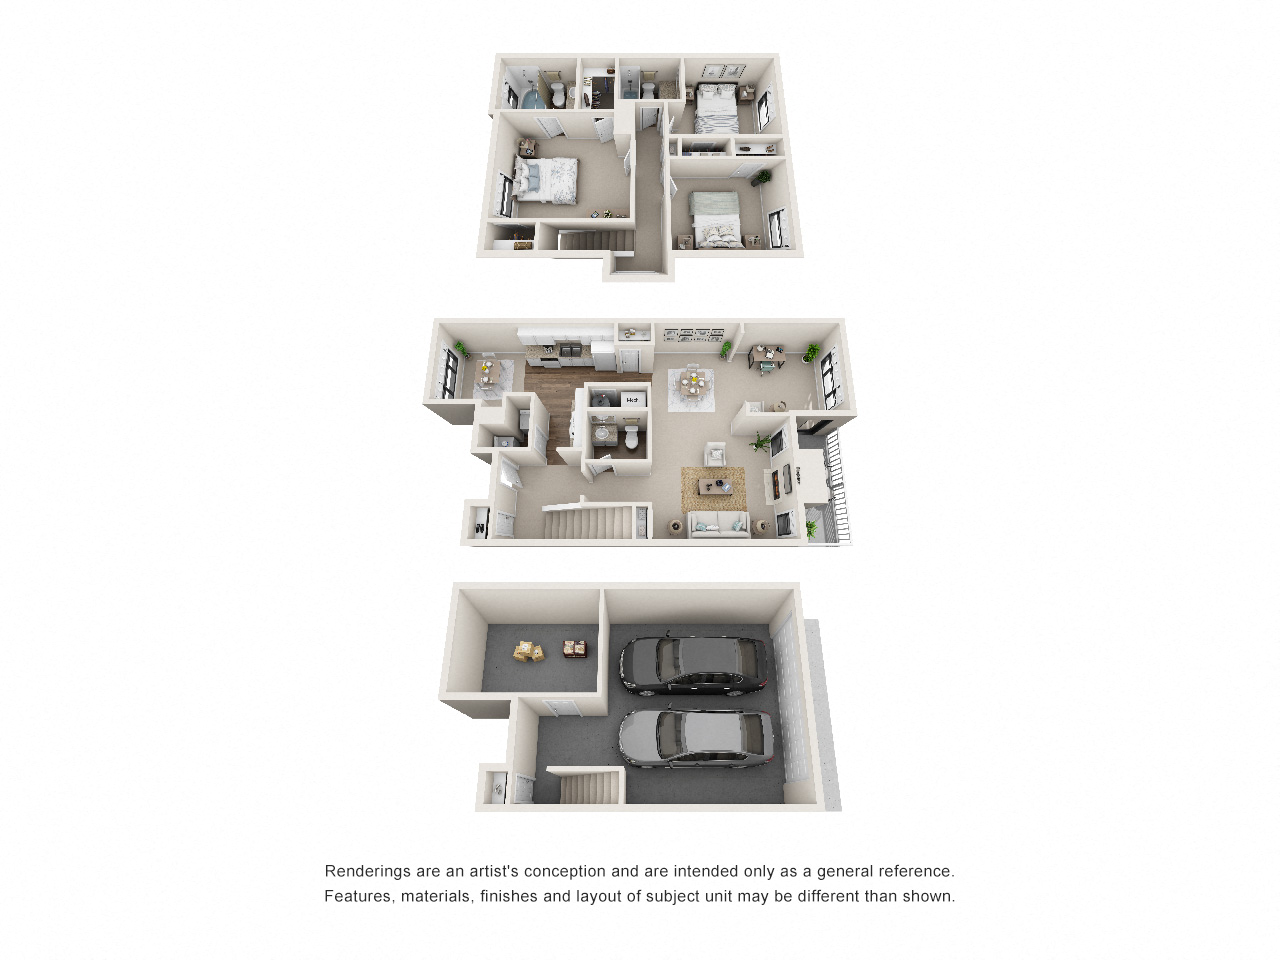 Prime 1 3 Bedroom Lawrenceville Apartments Floor Plans Download Free Architecture Designs Scobabritishbridgeorg